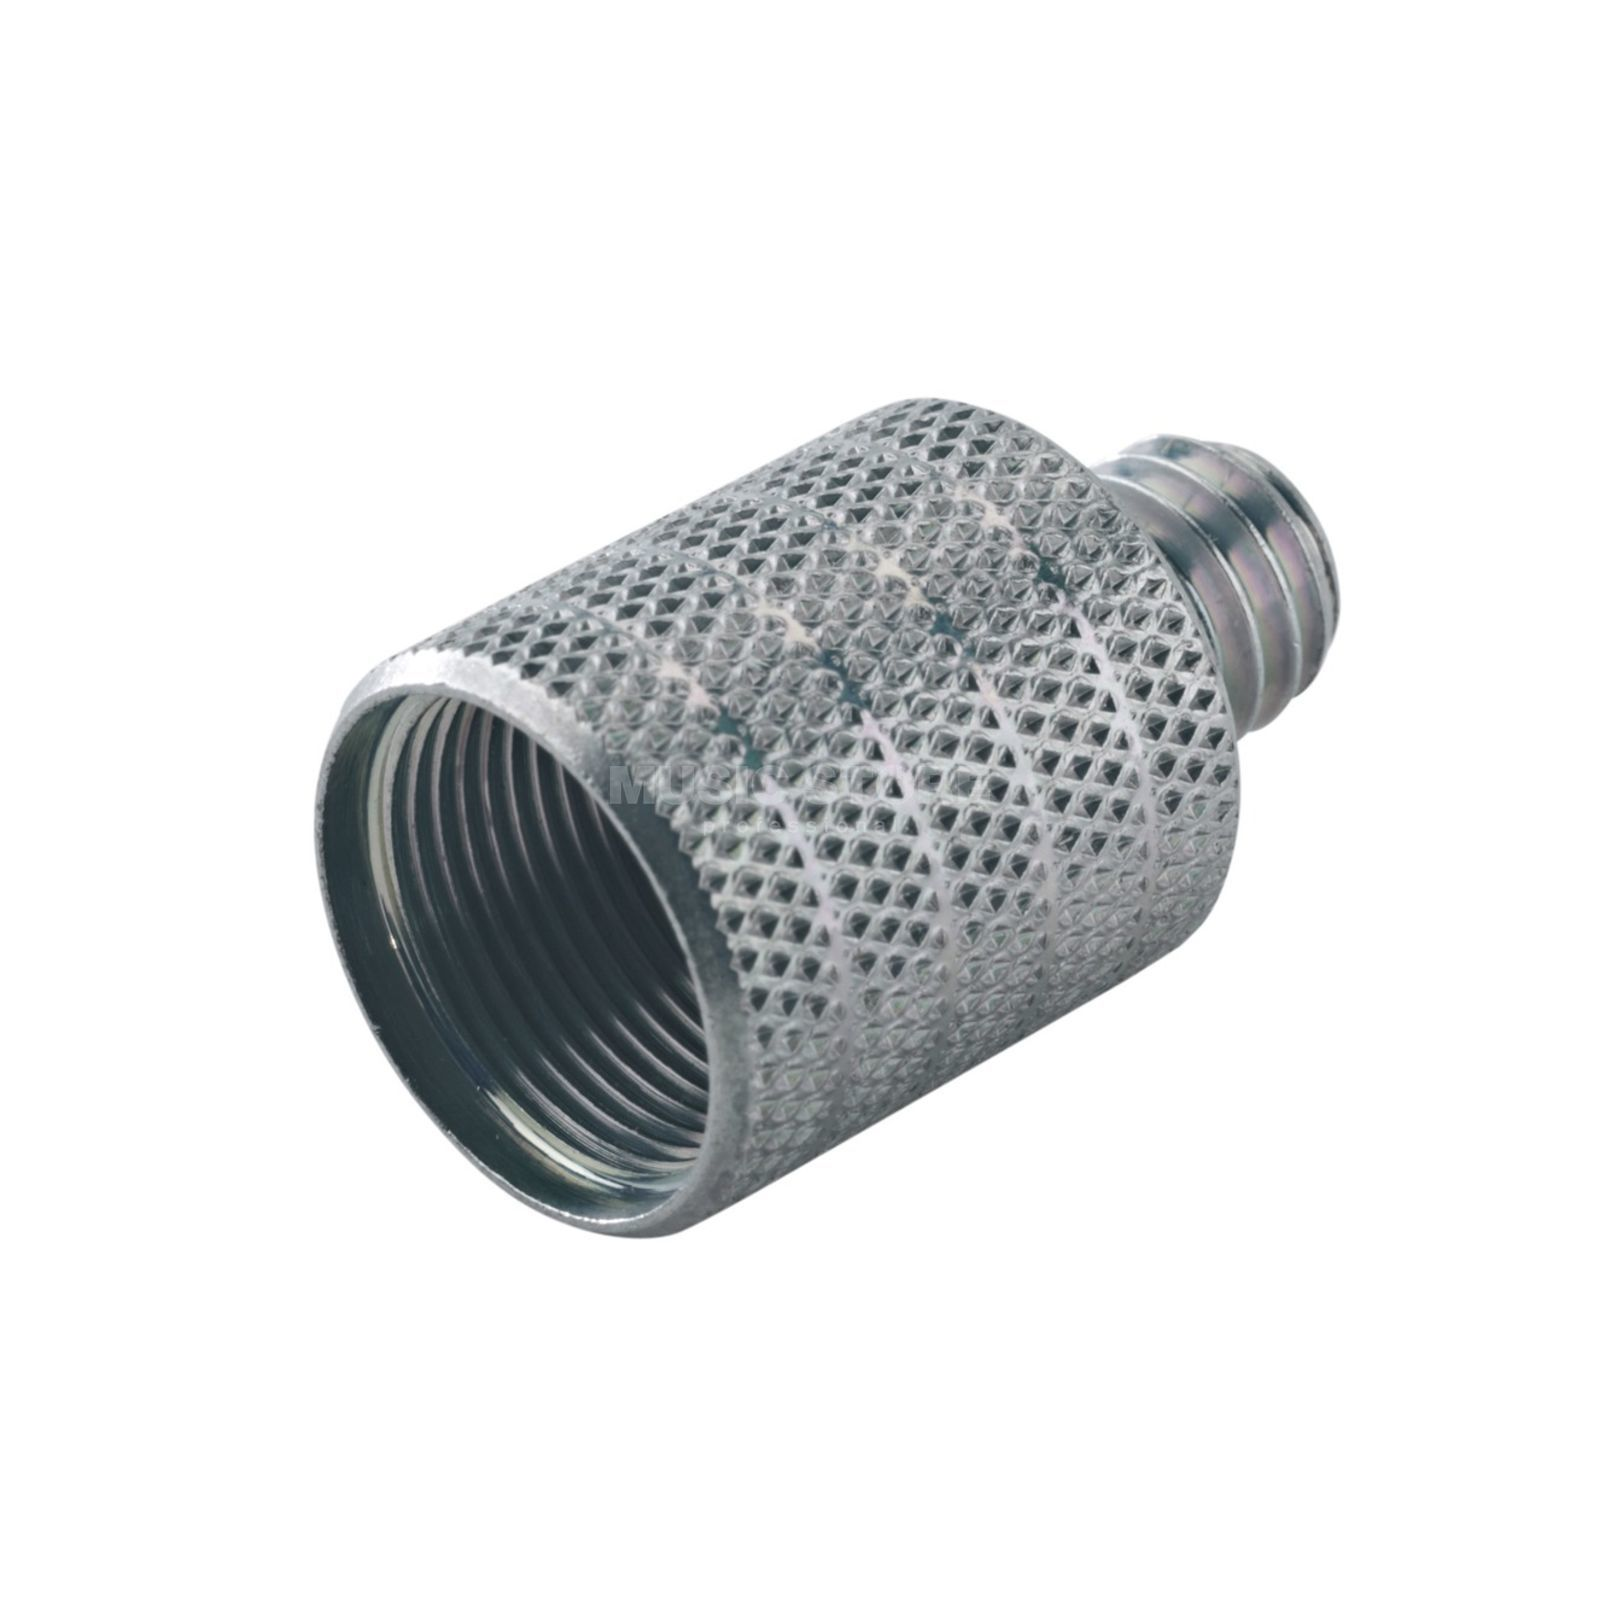 König & Meyer 216 Thread Adapter zinc-plated Produktbillede